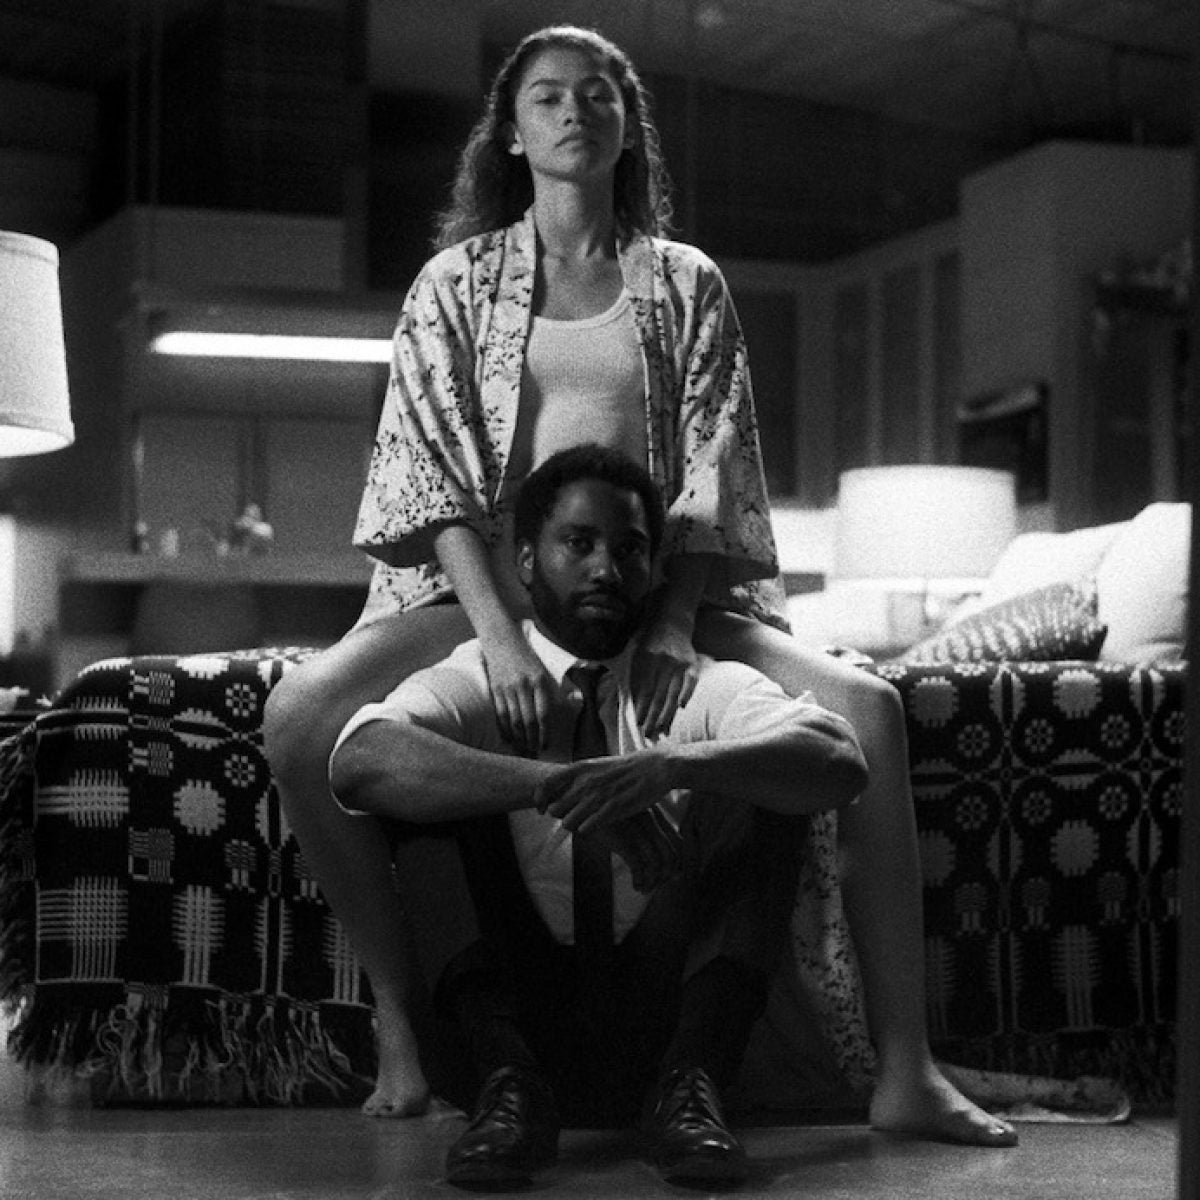 'Malcolm & Marie' Highlights The Beauty Of Black Male Vulnerability